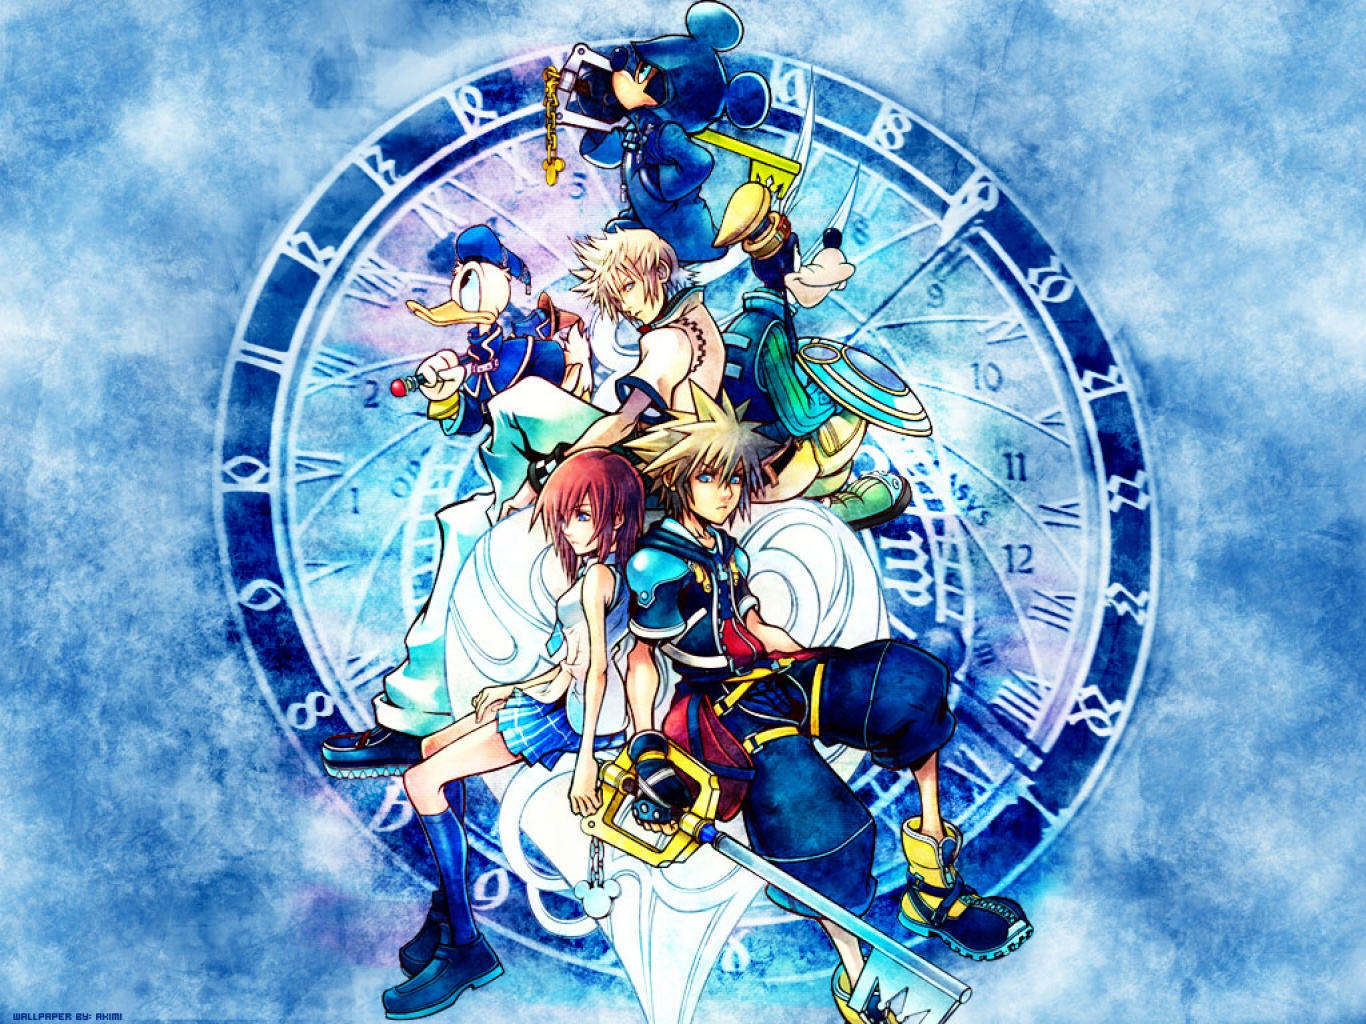 More Cool Kingdom Hearts Wallpapers 1366x1024